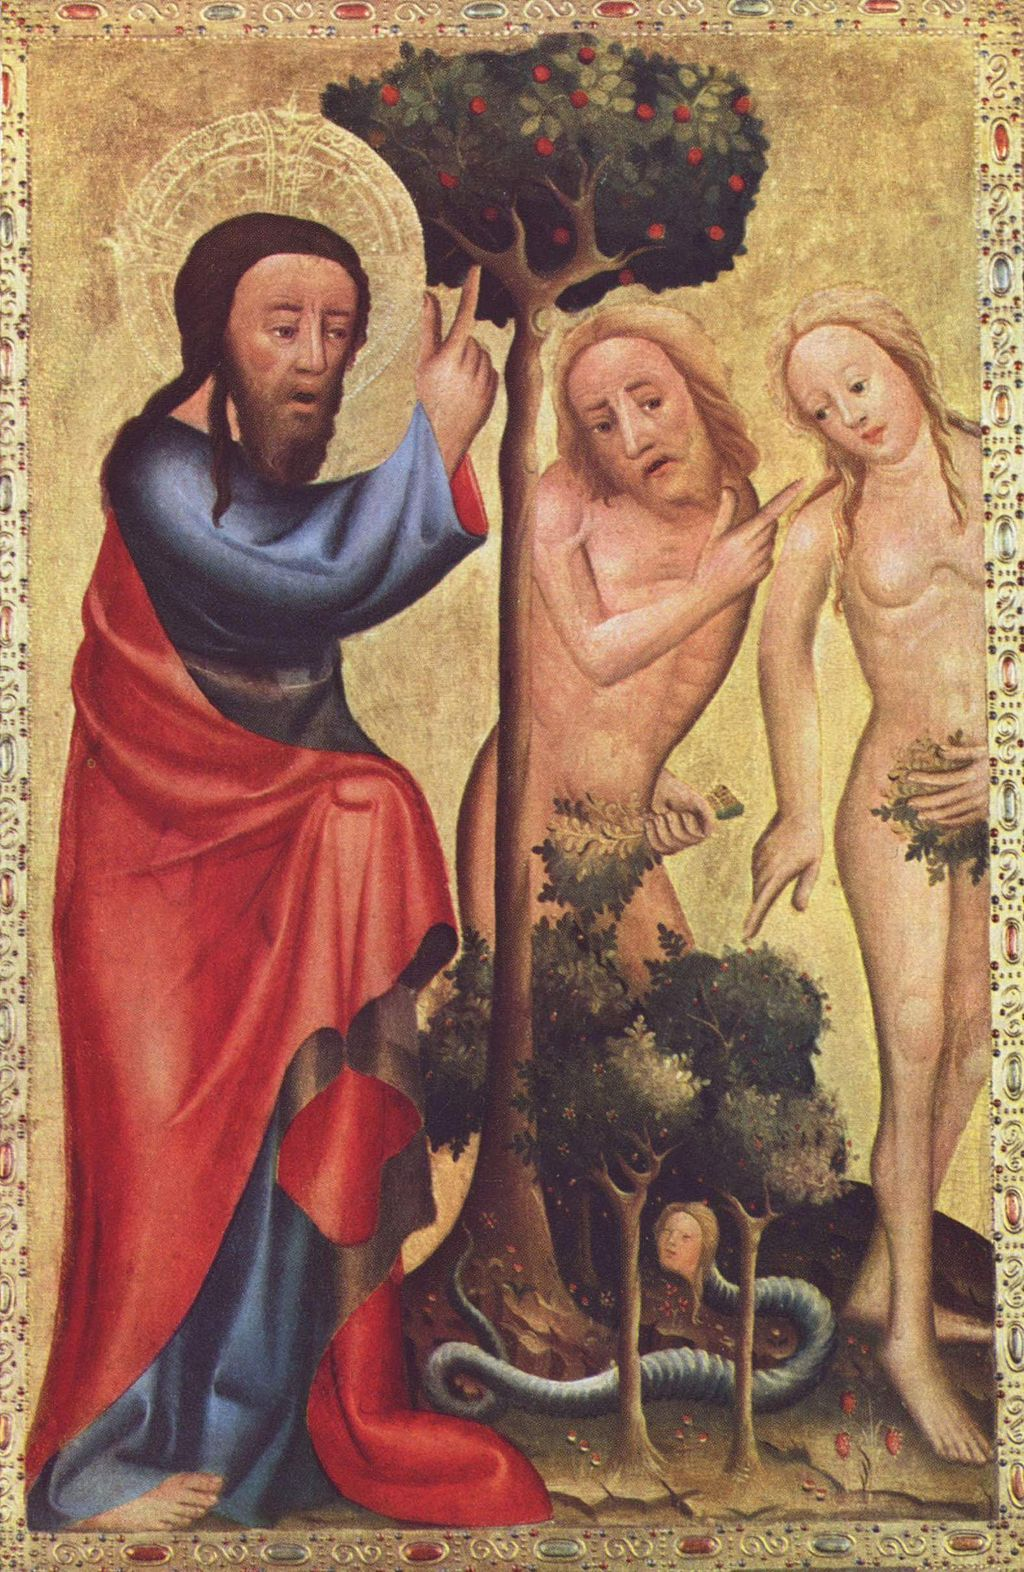 God (in the form of Jesus) chides Adam and Eve for eating the forbidden fruit. (Master Bertram, Public Domain, via Wikimedia Commons)